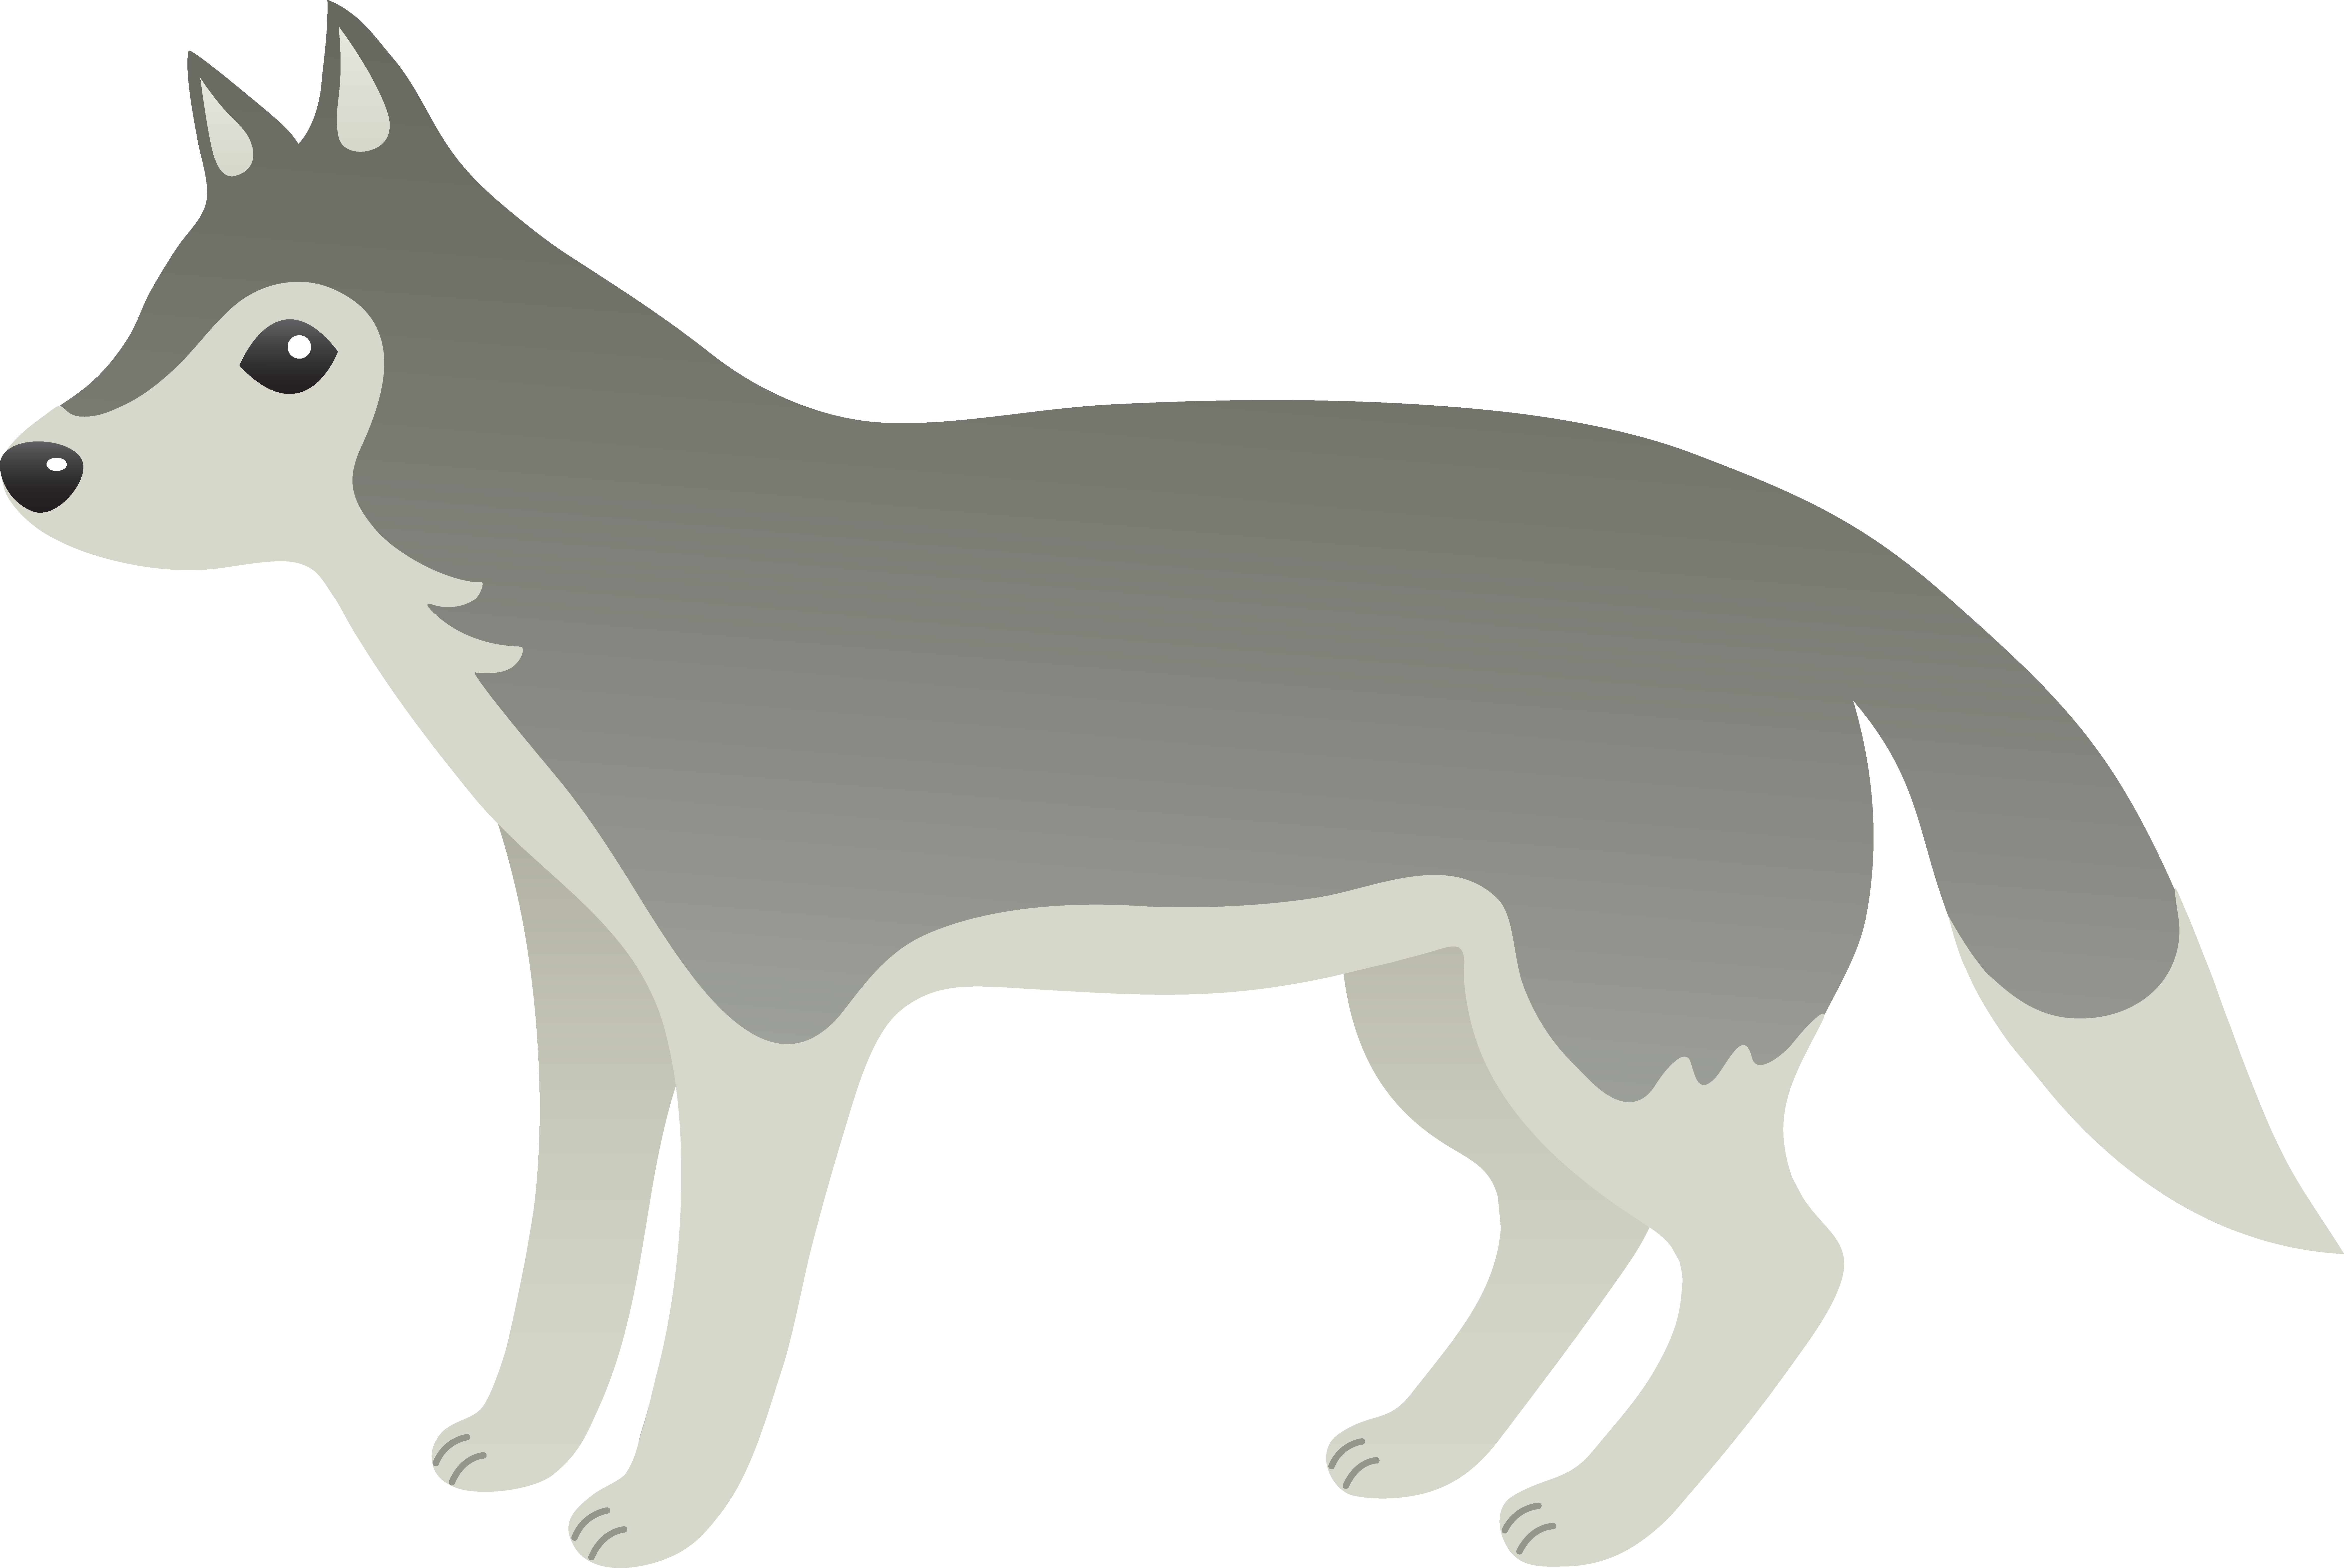 Wolves familys clipart clipart images gallery for free.